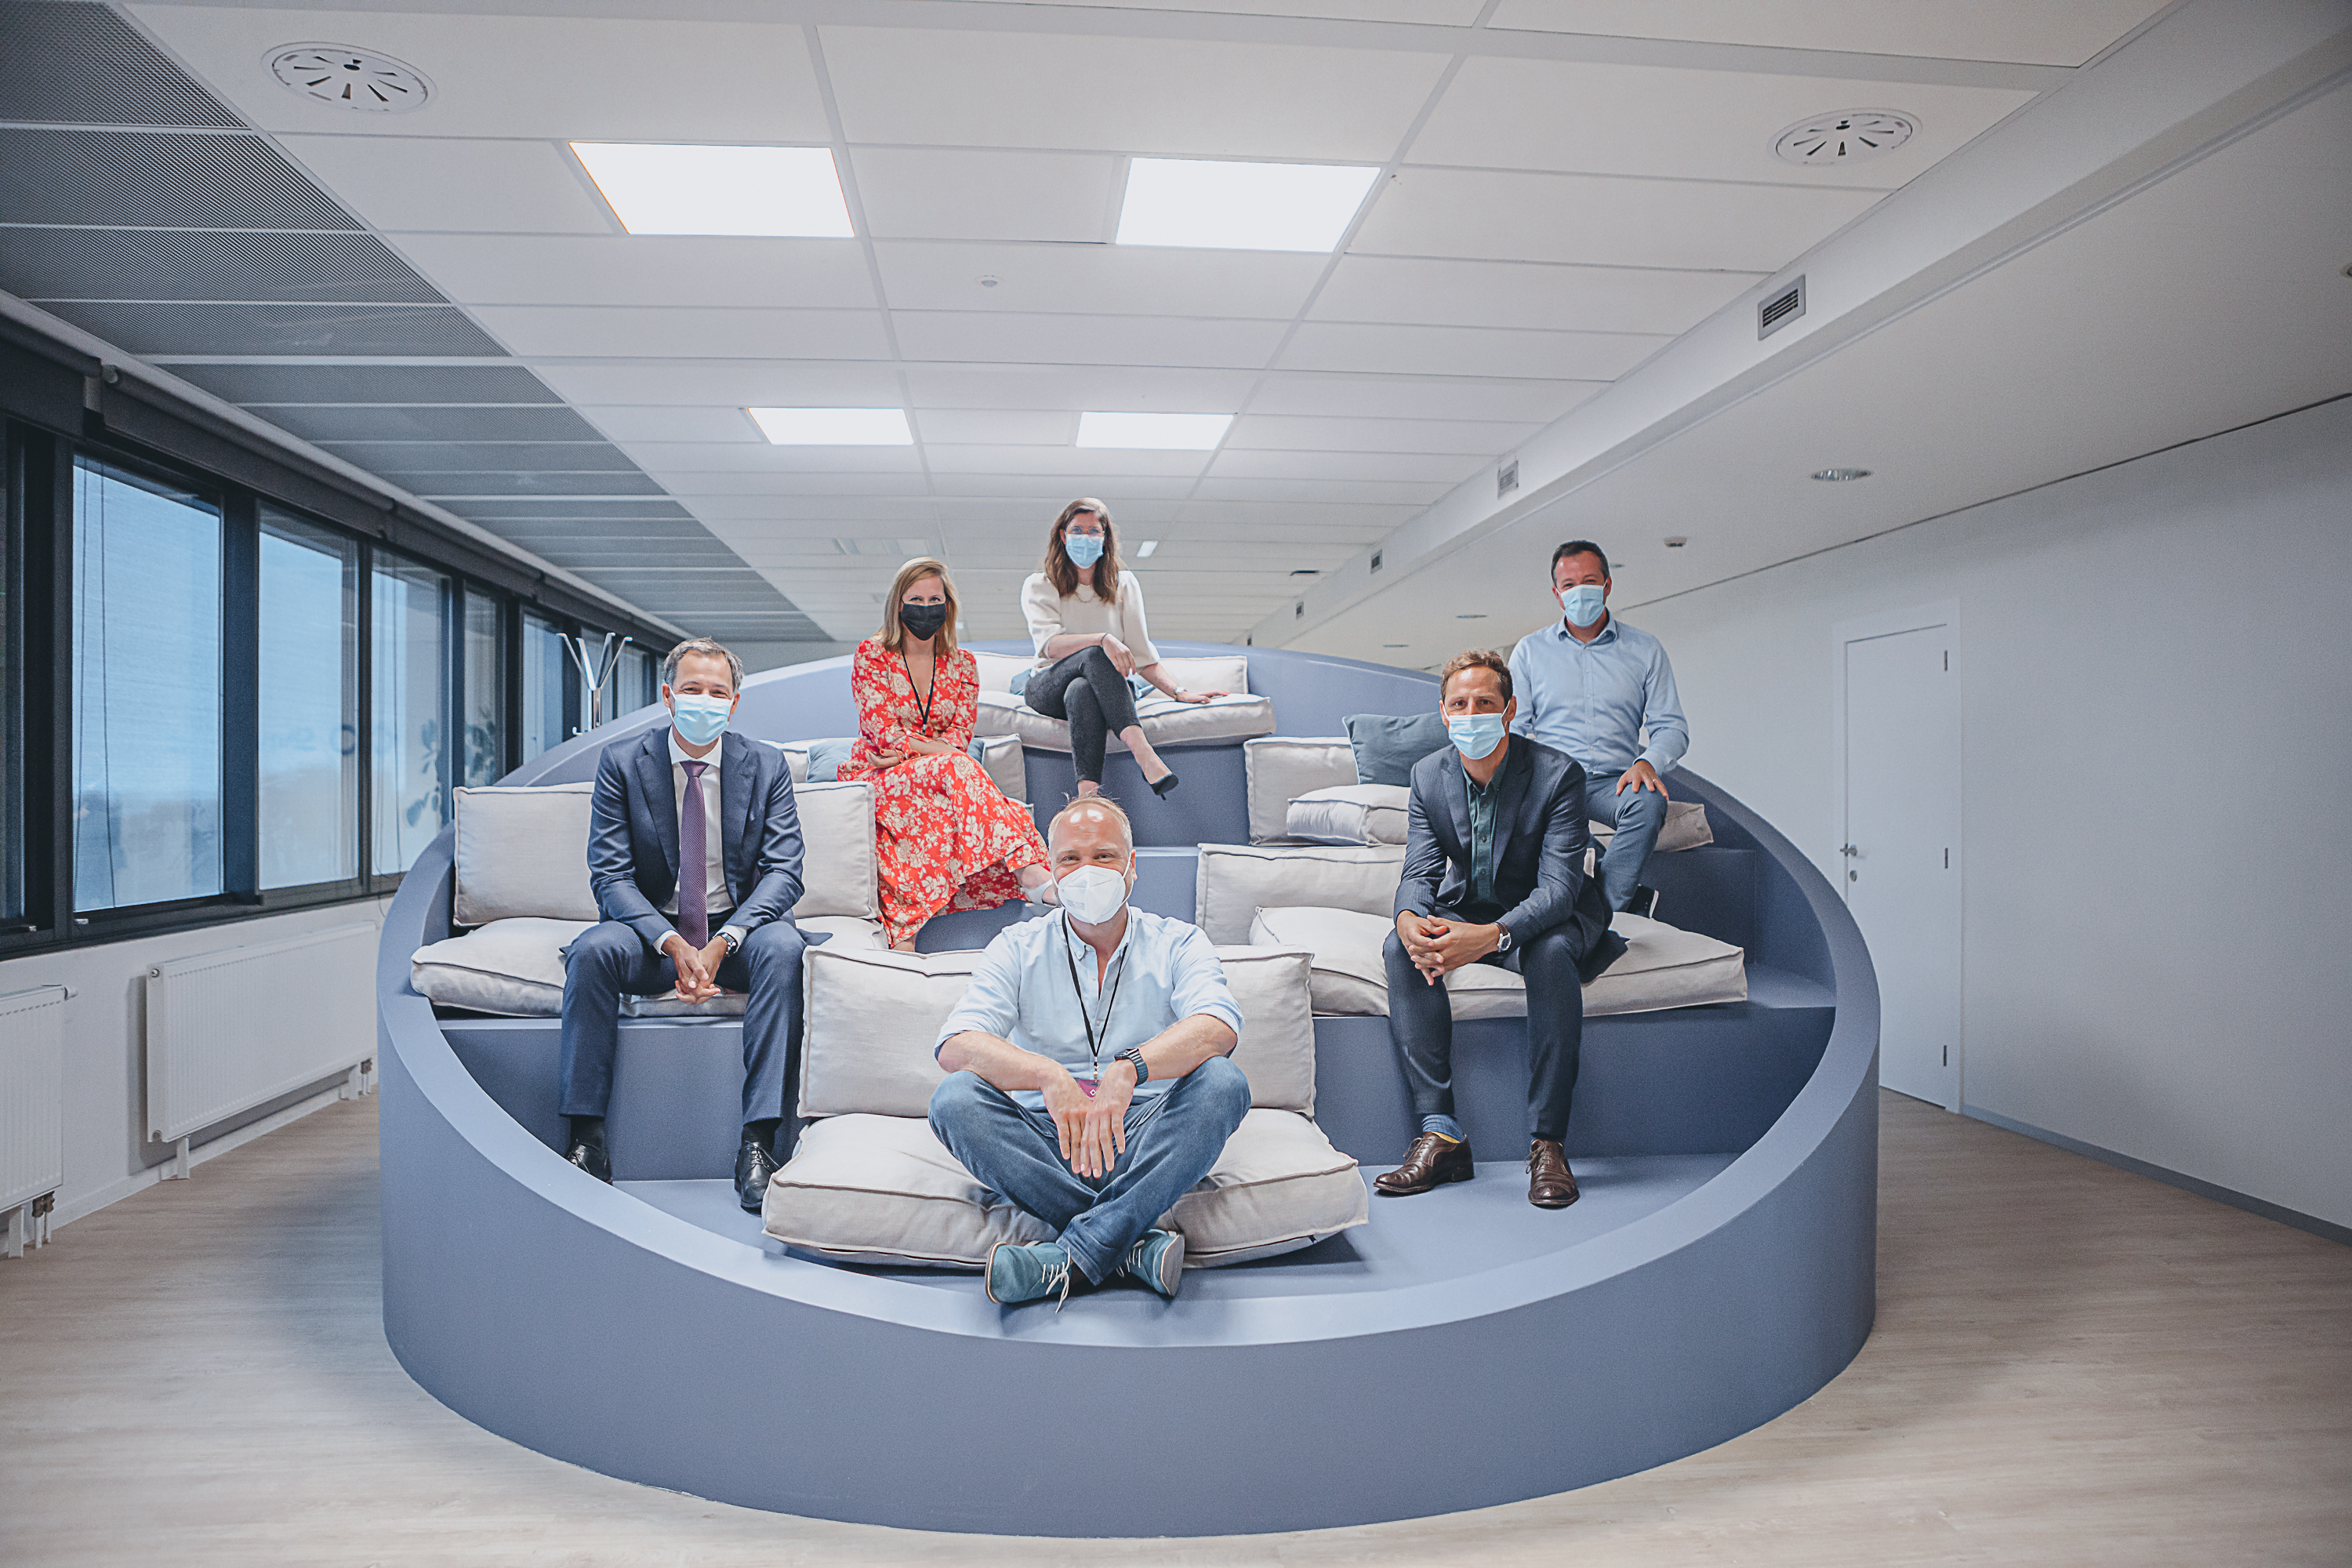 Belgian startup scene at full speed,but with growing pains